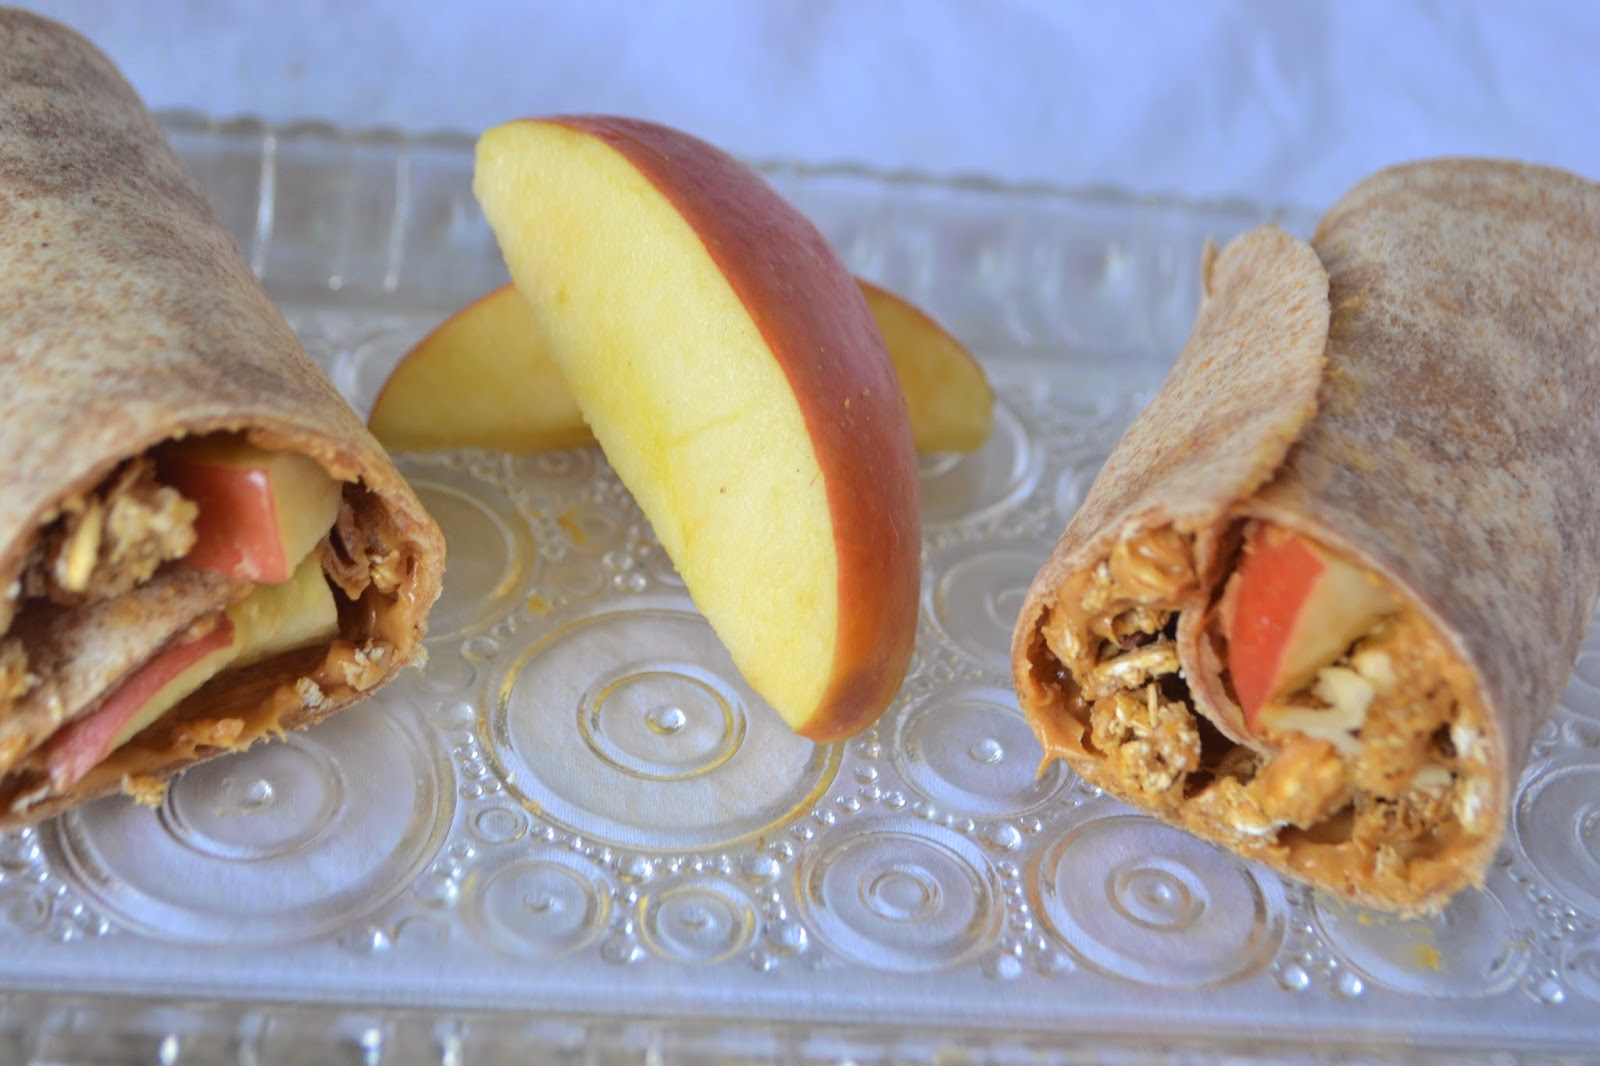 Peanut Butter, Granola and Apple Wrap